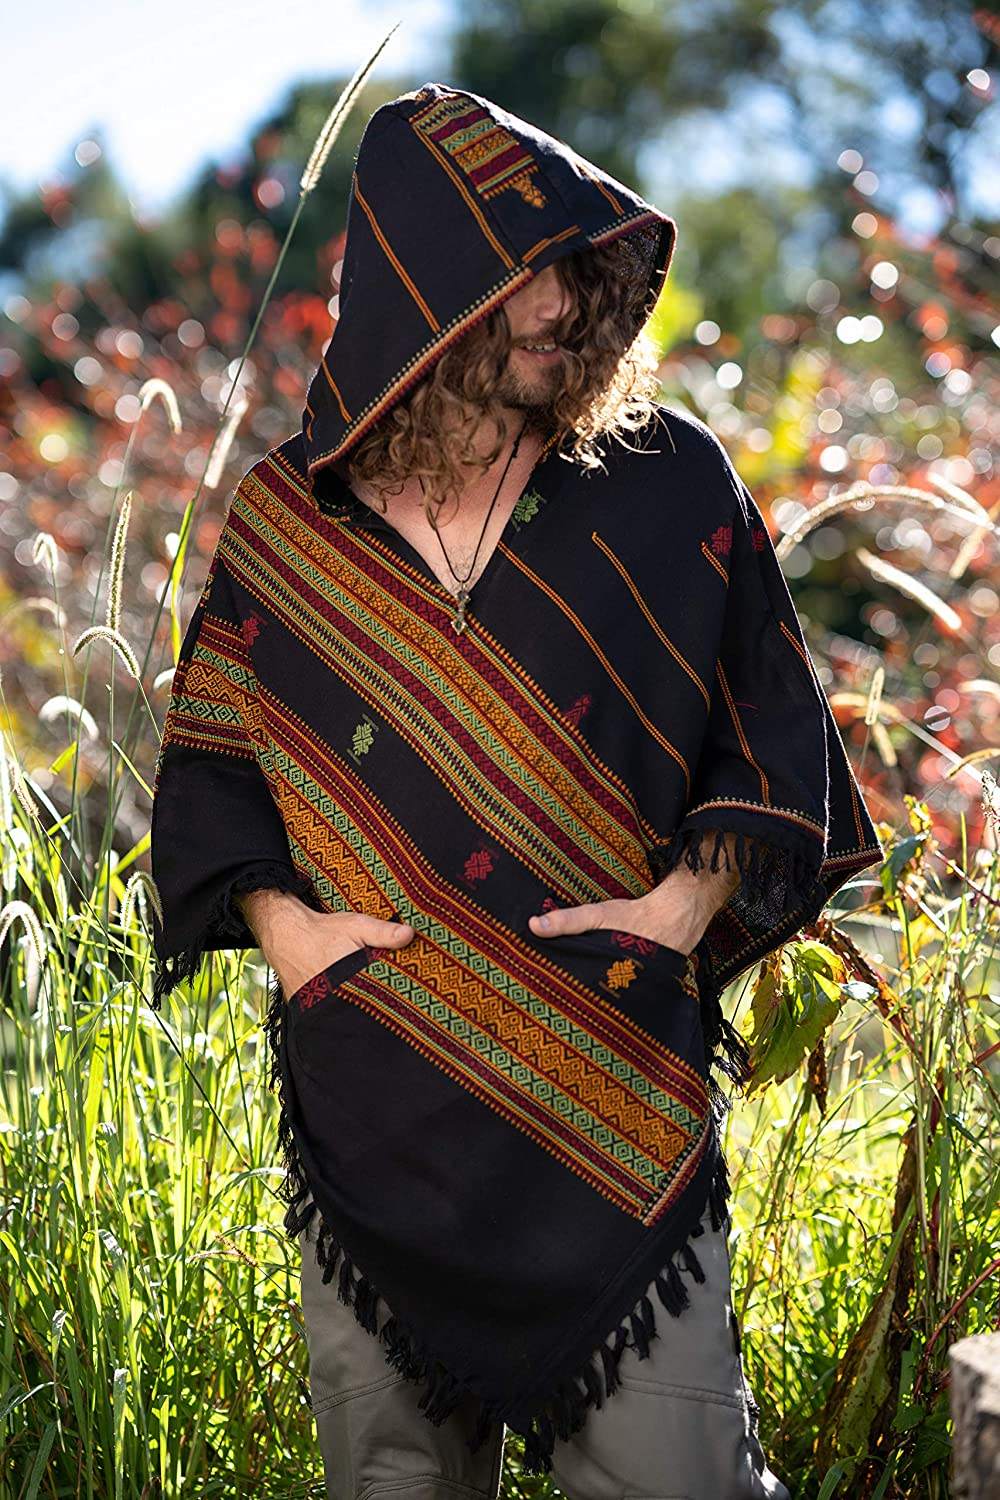 Handmade Green and Black Hooded Mens Poncho Cashmere Wool with Large Hood and Pockets Jungle Primitive Gypsy Festival Mexican Tribal Embroidered Celtic Earthy Winter Tibetan AJJAYA Wild /…